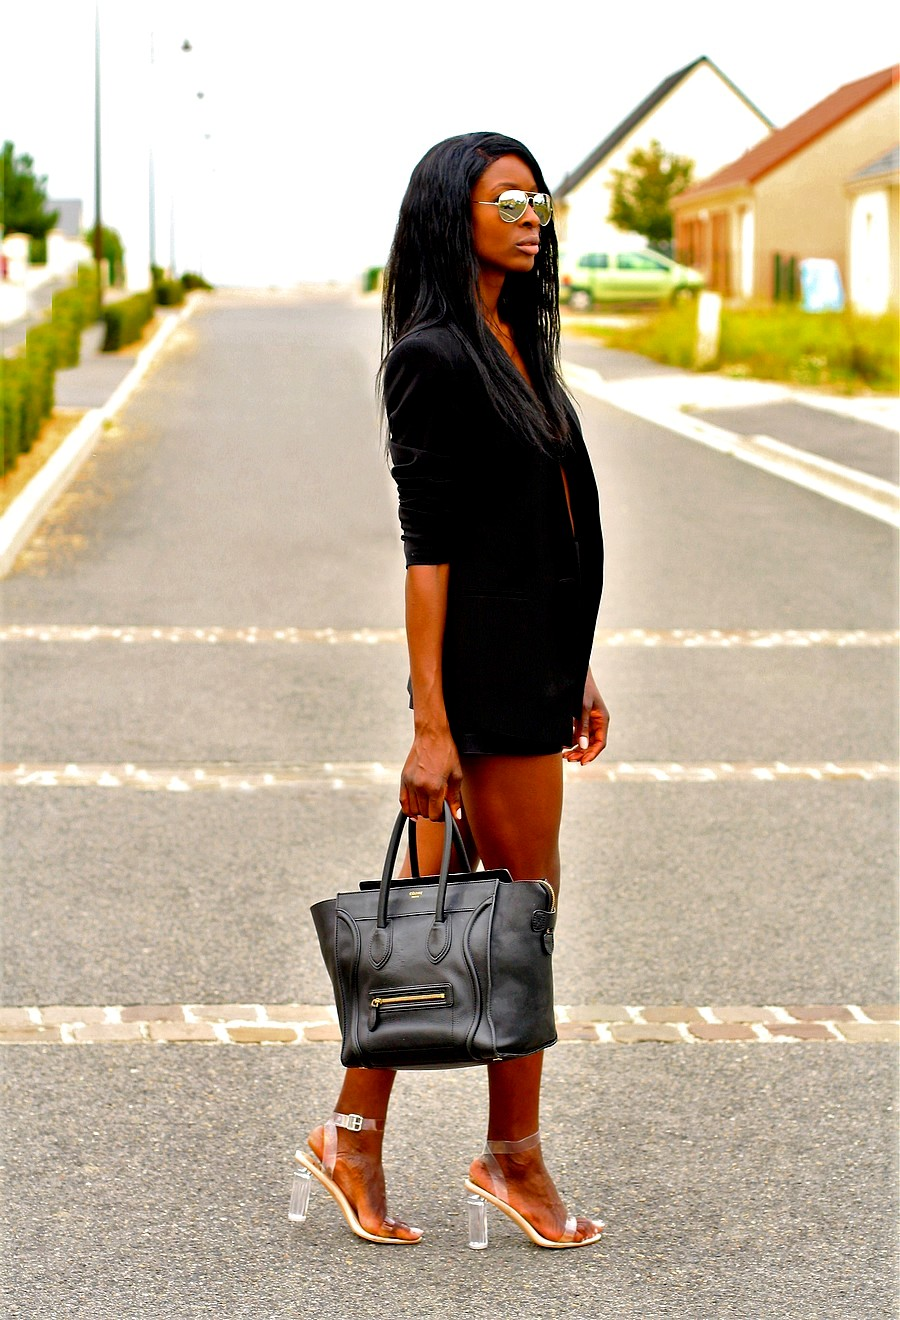 perspex-heels-celine-mini-luggage-highwaist-short-blazer-crop-top